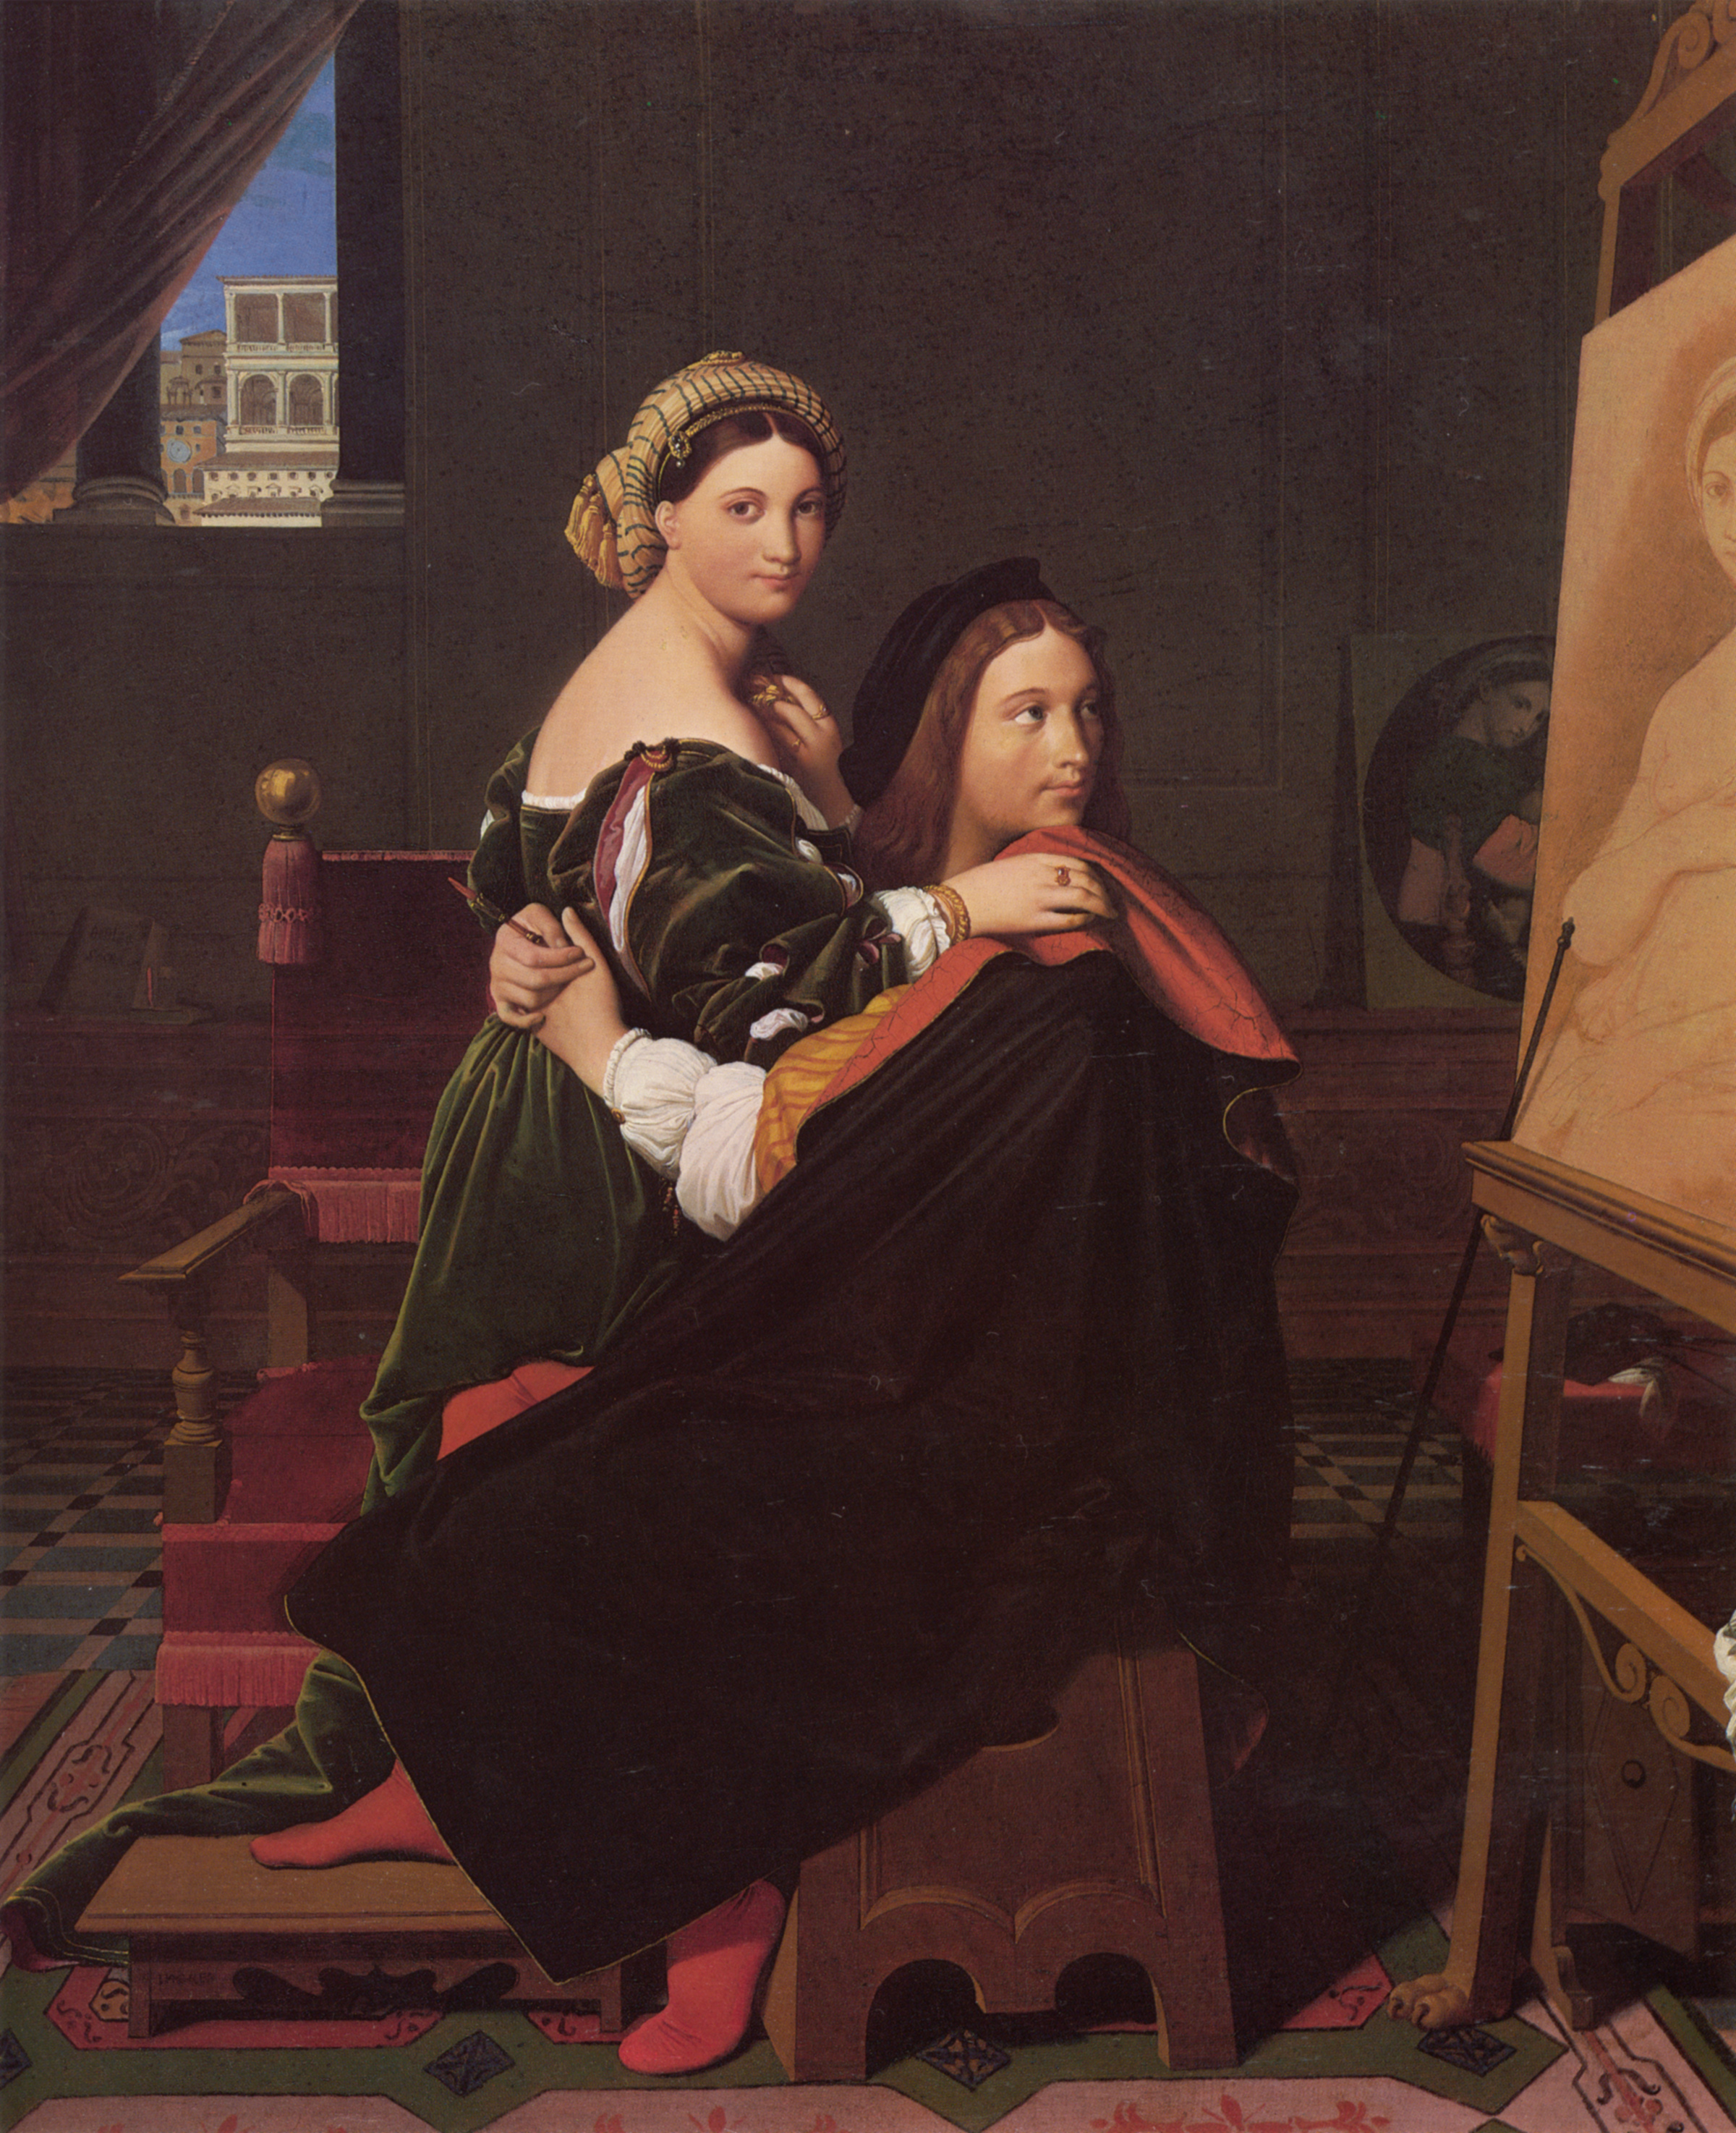 http://upload.wikimedia.org/wikipedia/commons/5/5f/Jean_auguste_dominique_ingres_raphael_and_the_fornarina.jpg